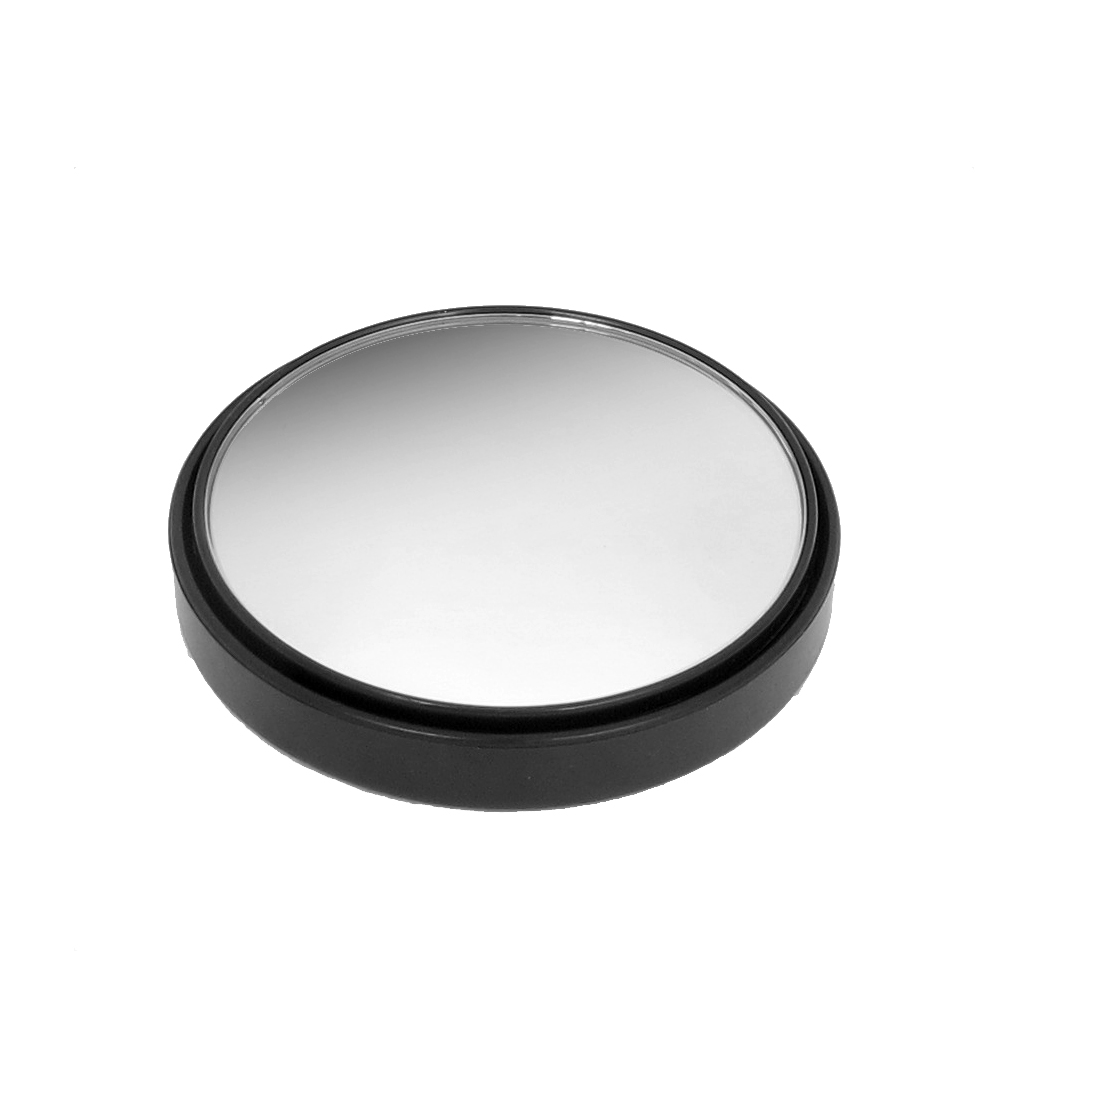 Car Self Adhesive Base 80mm Dia Black Plastic Shell Round Convex Rearview Blind Spot Rear View Mirror